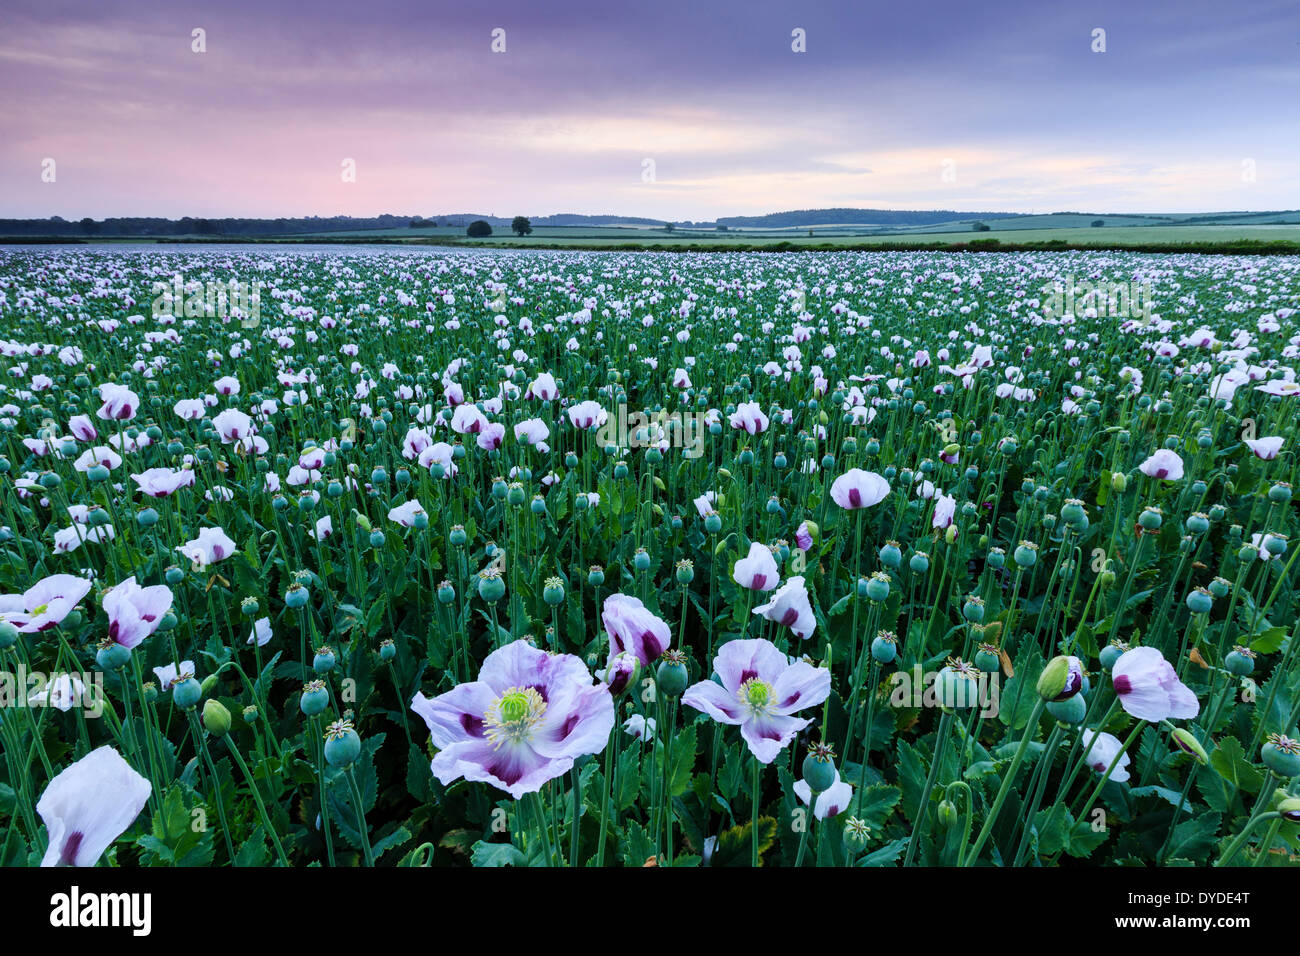 Sunrise over a field of opium poppies near Morden. - Stock Image